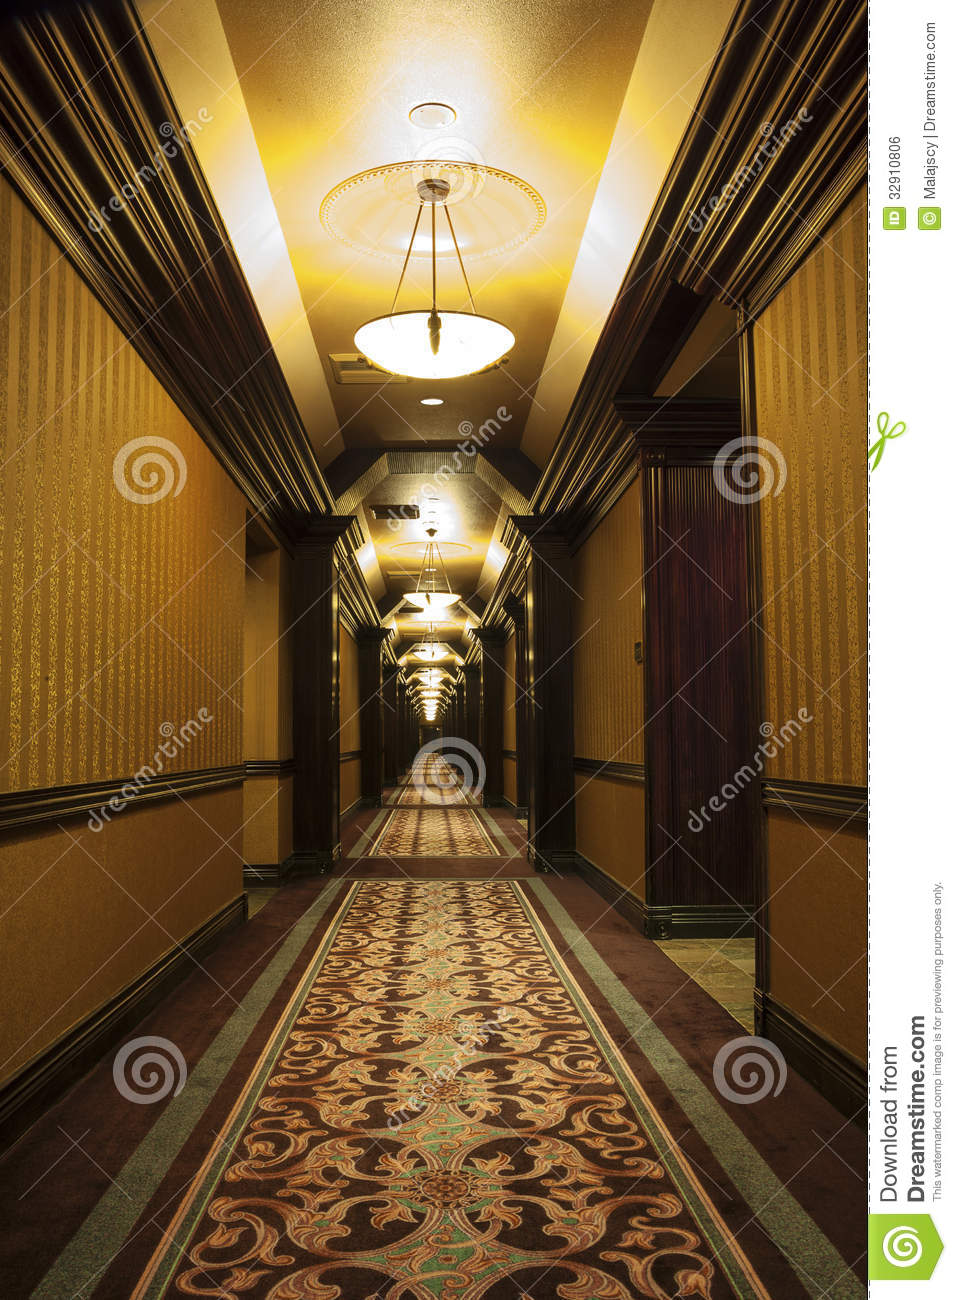 long art deco corridor royalty free stock image image 32910806 On deco corridor